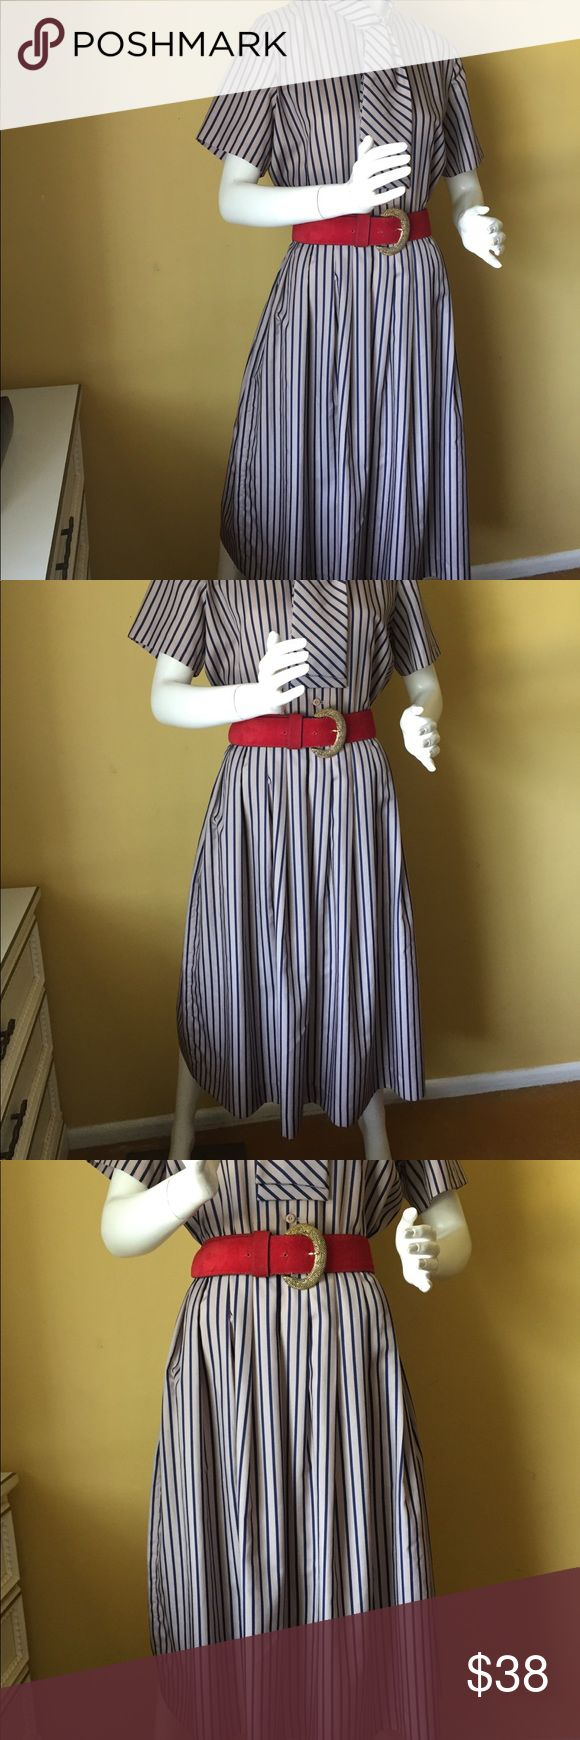 "Vintage Serbin taupe and navy striped dress Vintage Serbin taupe and navy striped dress. Length 48.5"", waist 32"", bust 42"". Fabric is most likely polyester. Small pull in the fabric by the last button. See final picture. Barely visible. Price will reflect this flaw. Belt not included. Vintage Dresses"